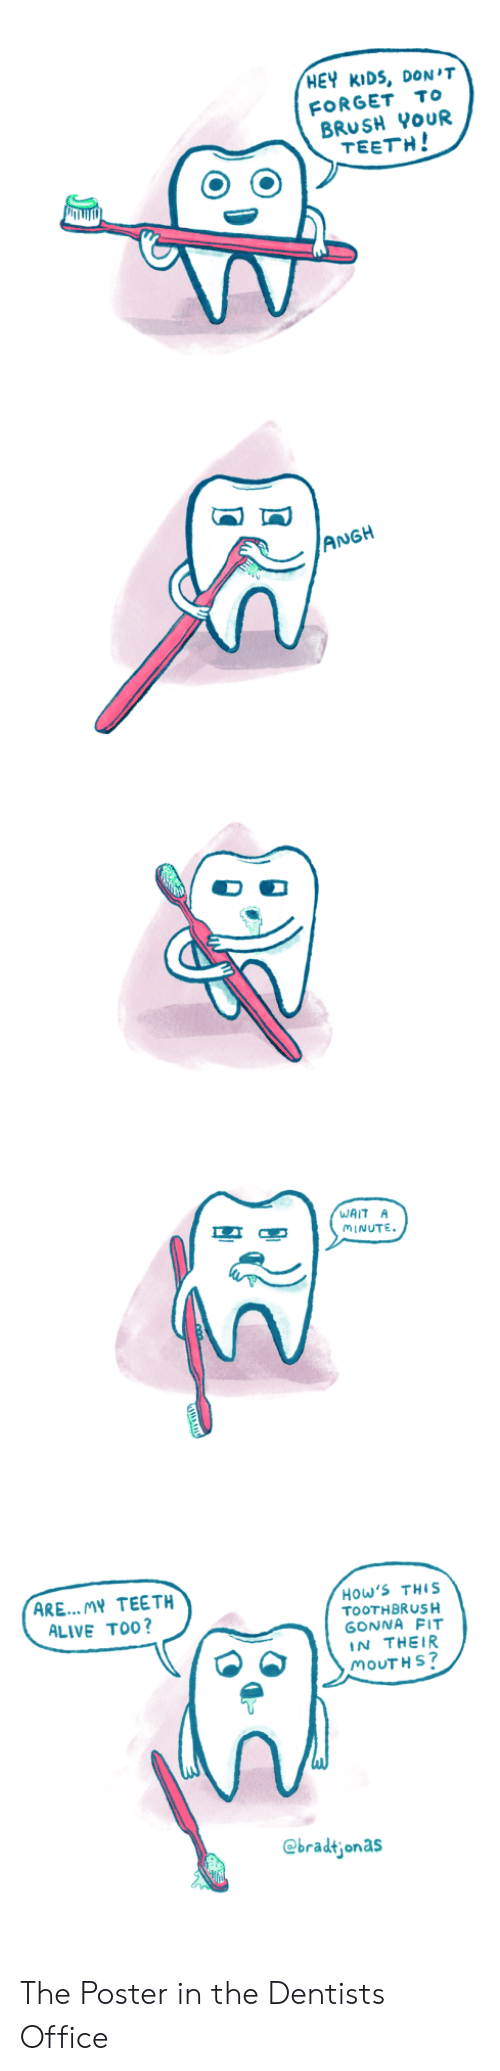 Toothbrush: HEY KIDS, DON'T  FORGET To  BRUSH YoUR  TEETH!  ANGH  WAIT A  MINUTE  ARE... MY TEETH  ALIVE TO0?  How'S THIS  TOOTHBRUSH  GONNA FIT  IN THEIR  MOUTH S  @bradtjonas The Poster in the Dentists Office